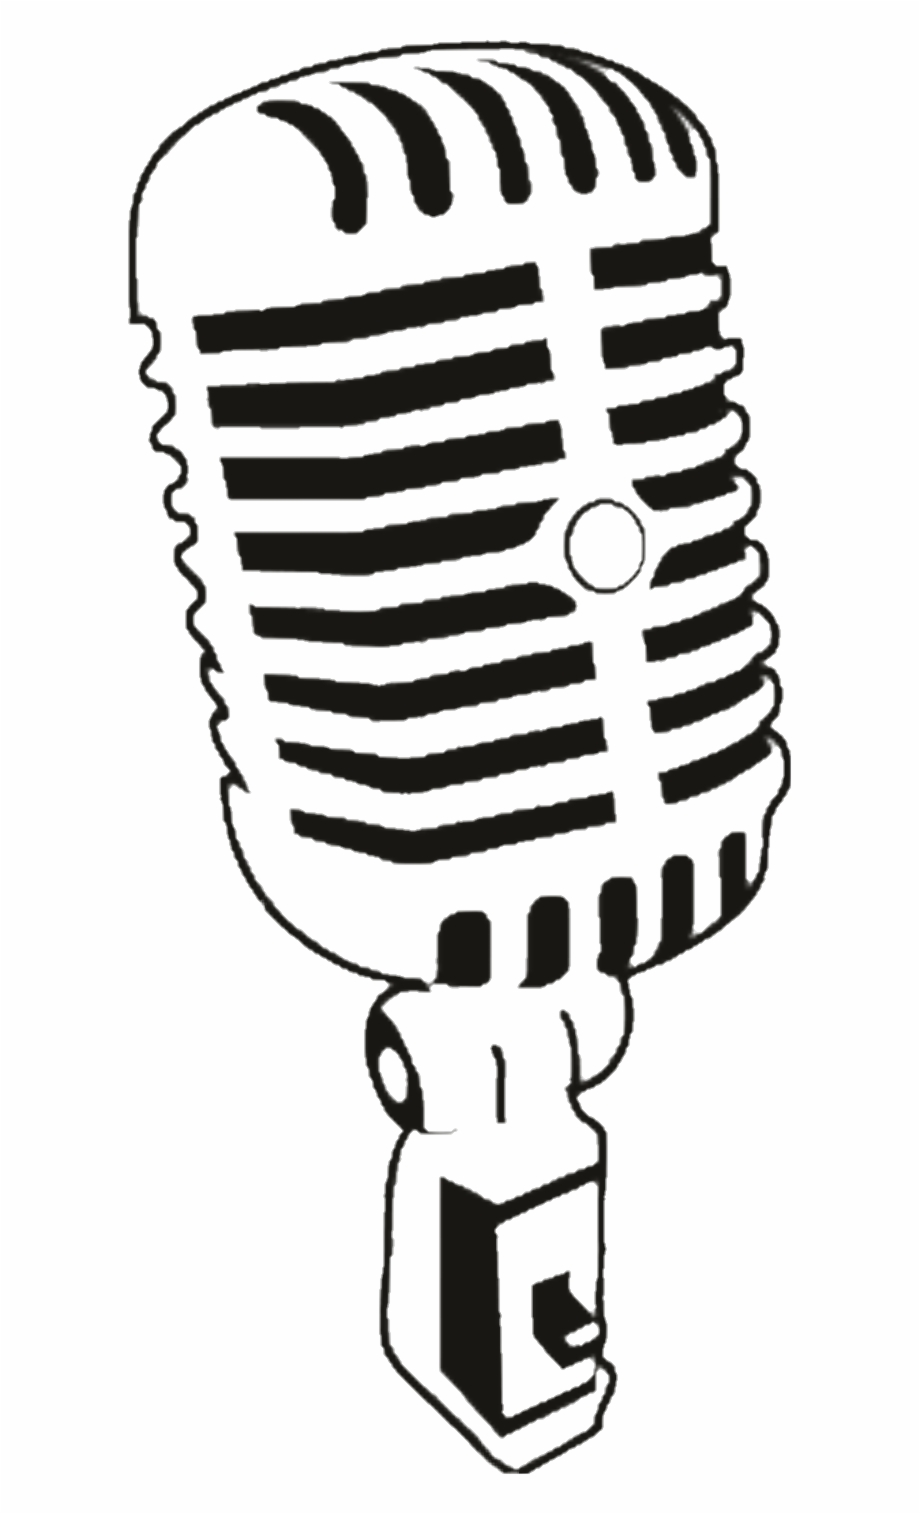 Microphone vector clipart graphic freeuse microphone #rock #microfono - Vintage Microphone Vector Png Free PNG ... graphic freeuse